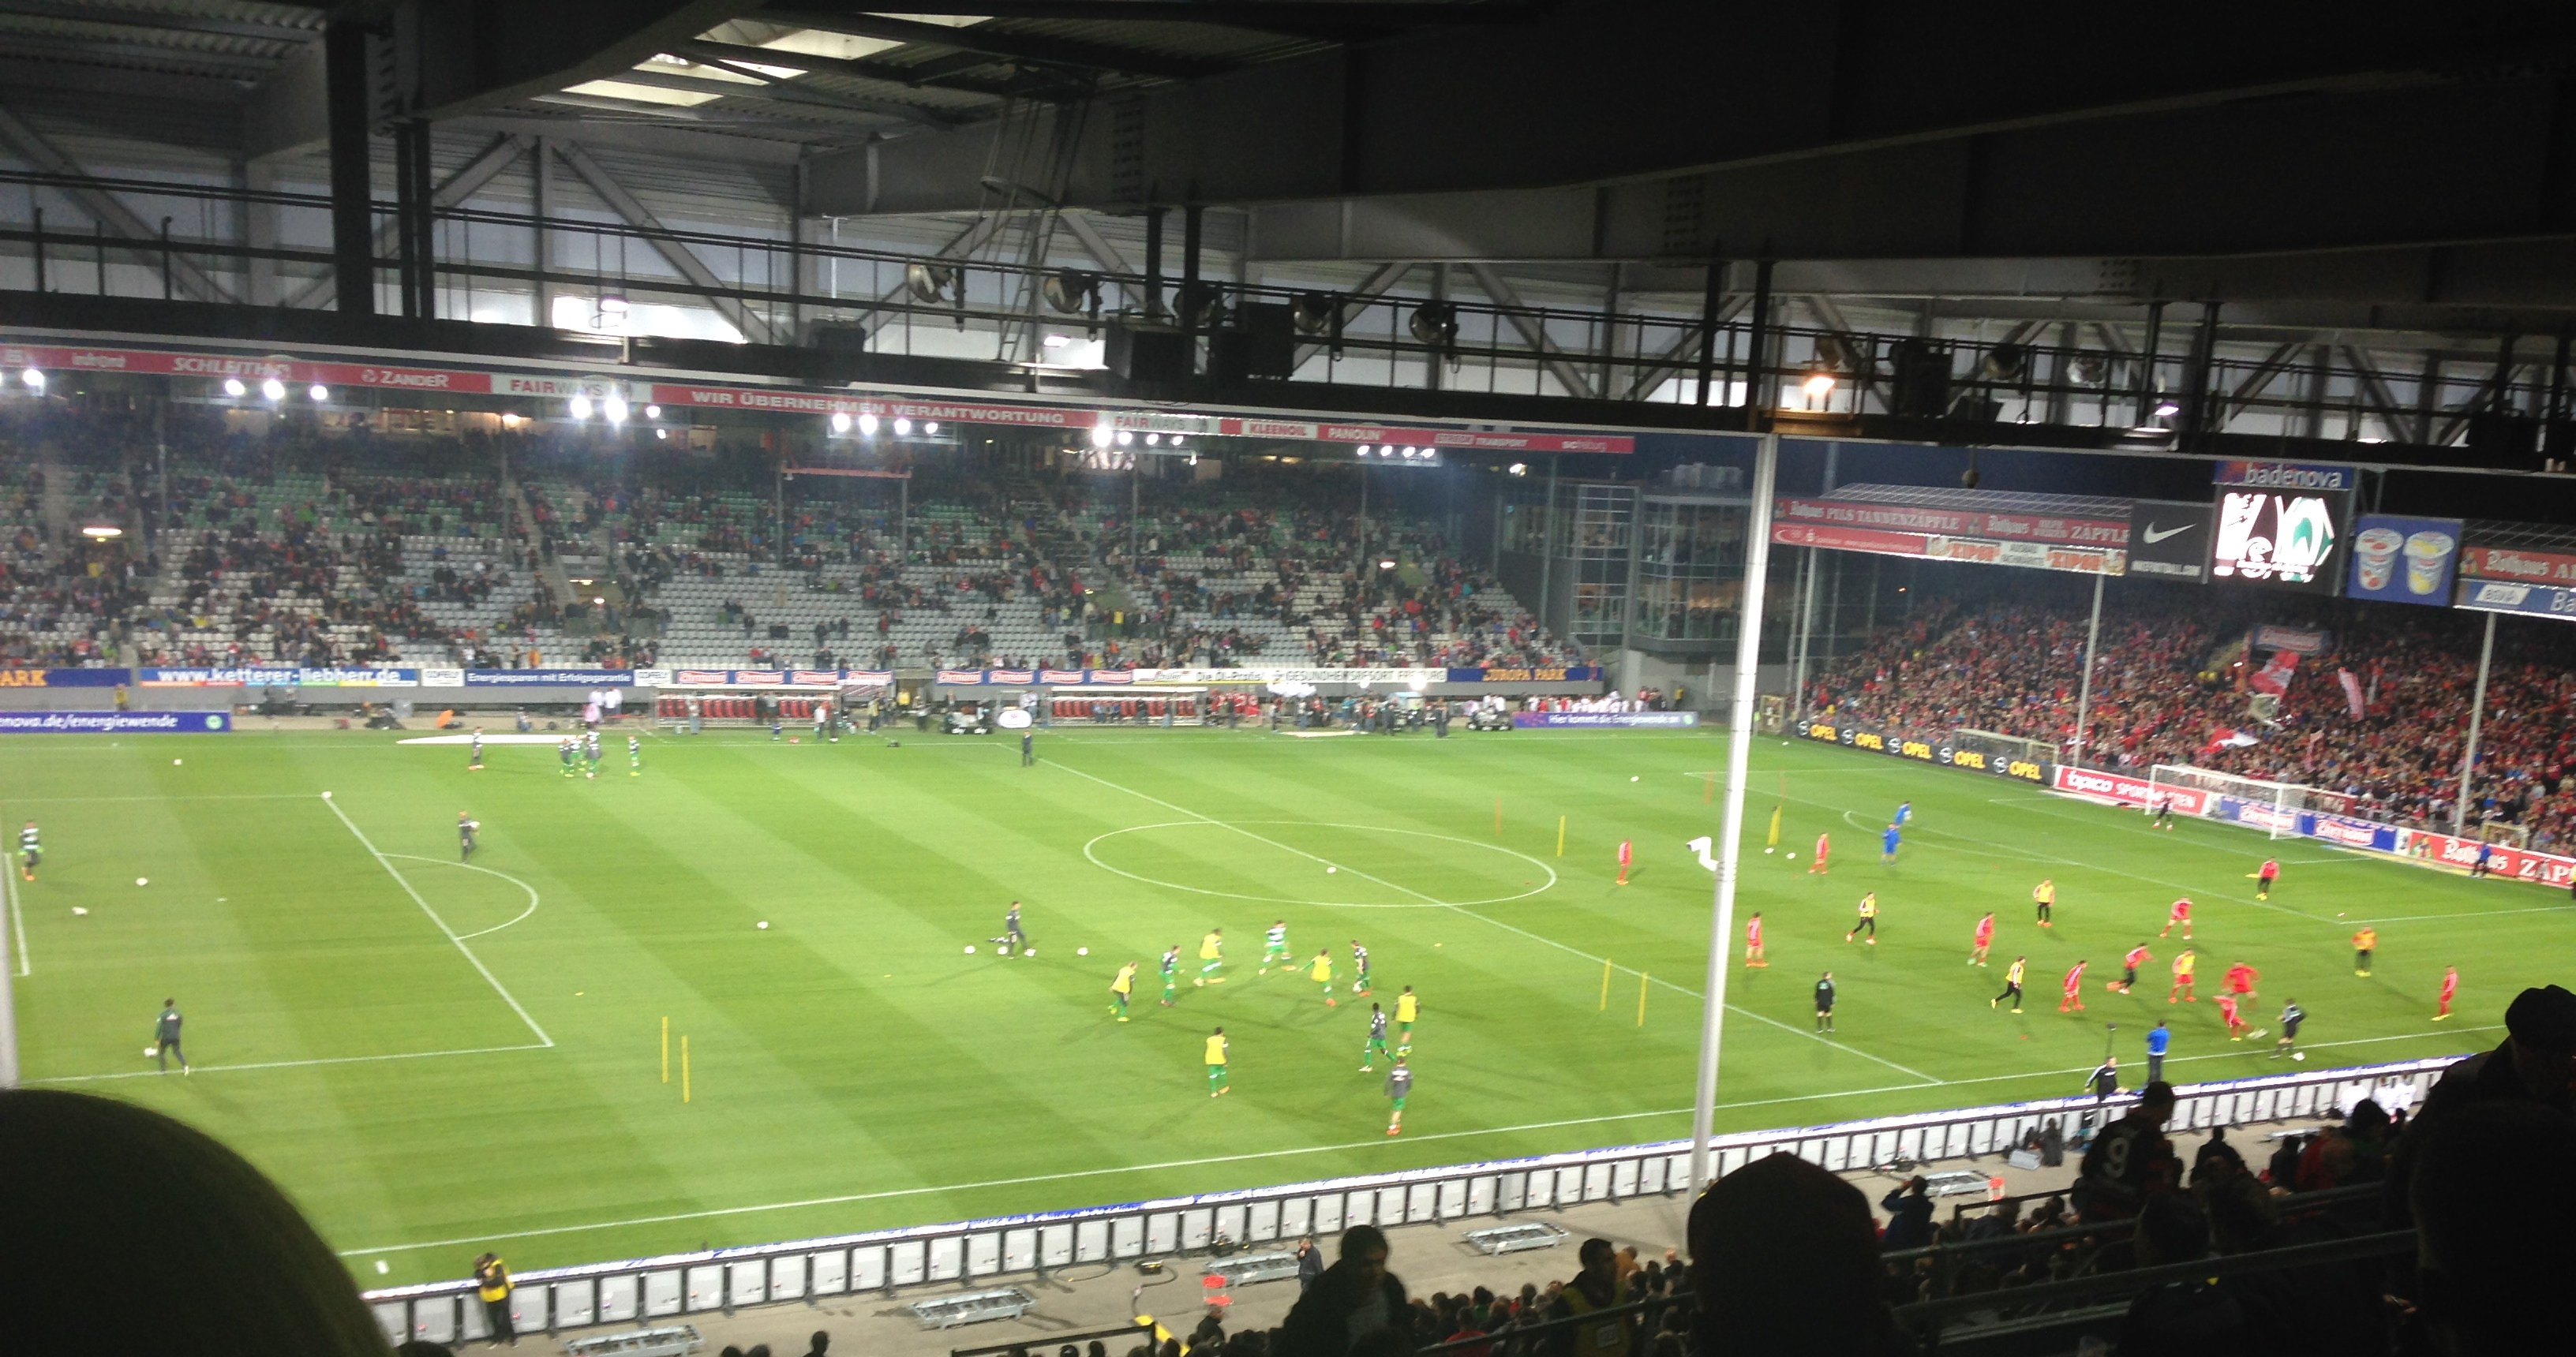 S.C. Freiburg Football Game